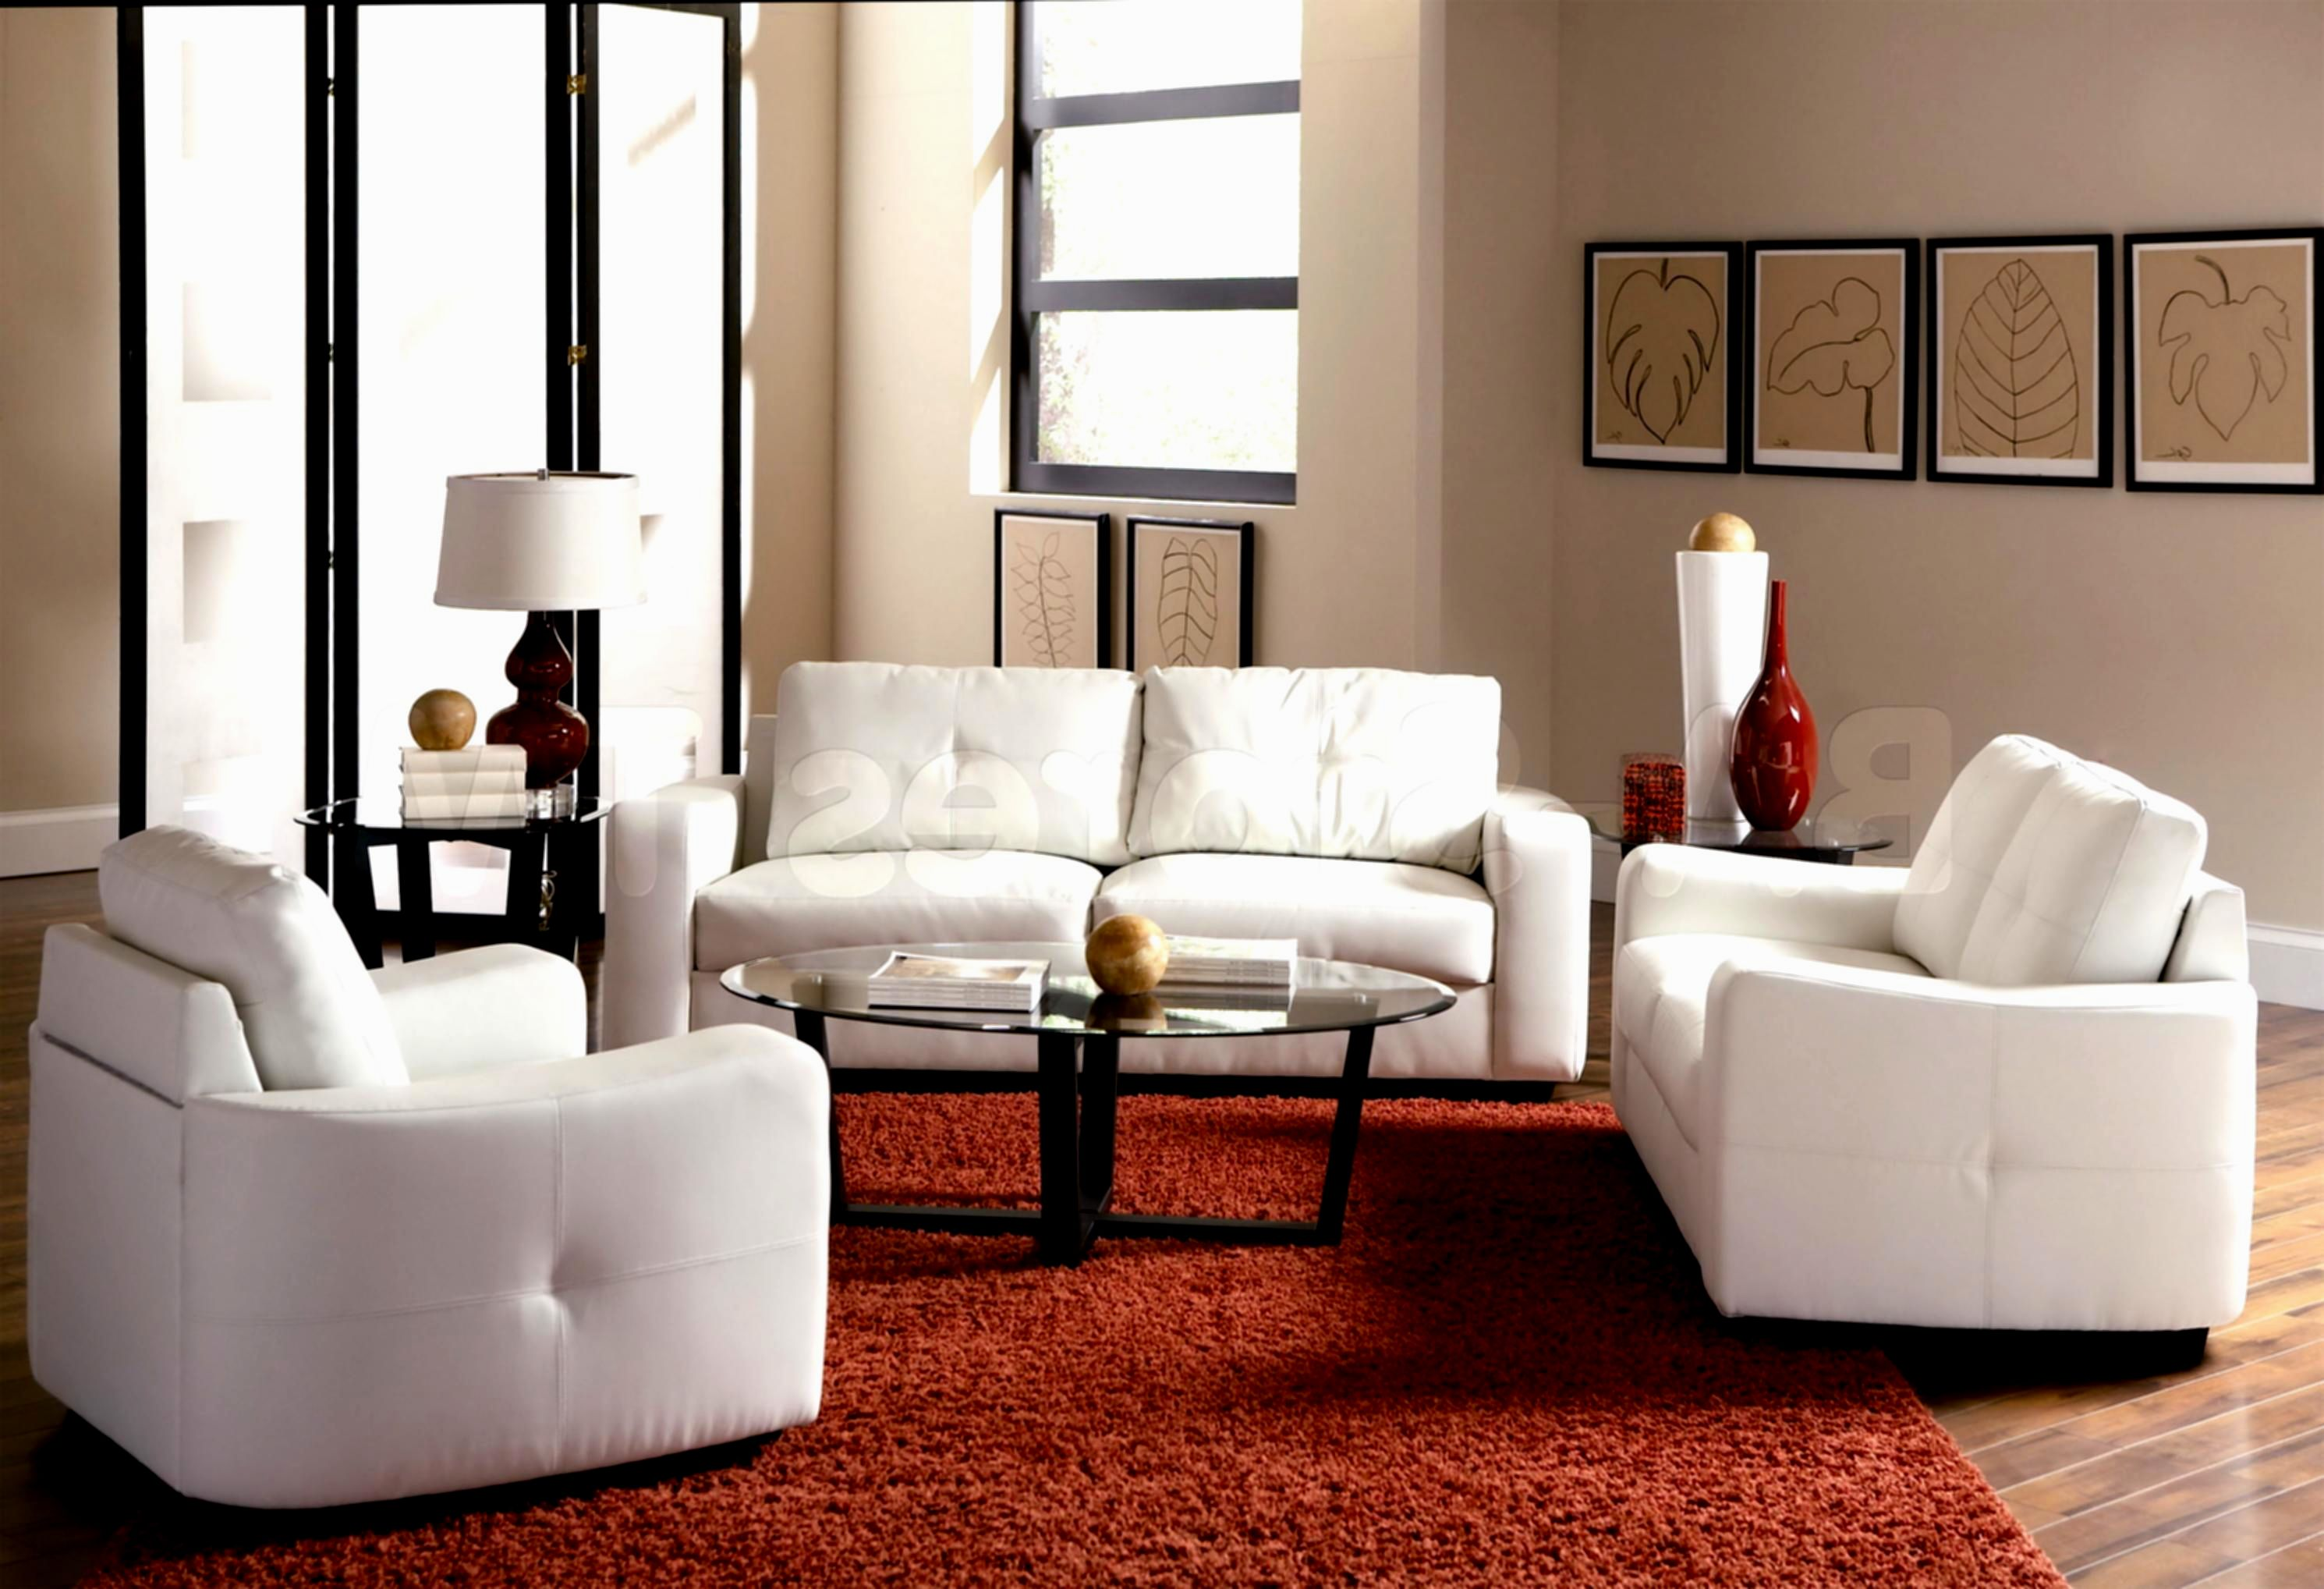 inspirational sofa bed sectional model-Inspirational sofa Bed Sectional Pattern